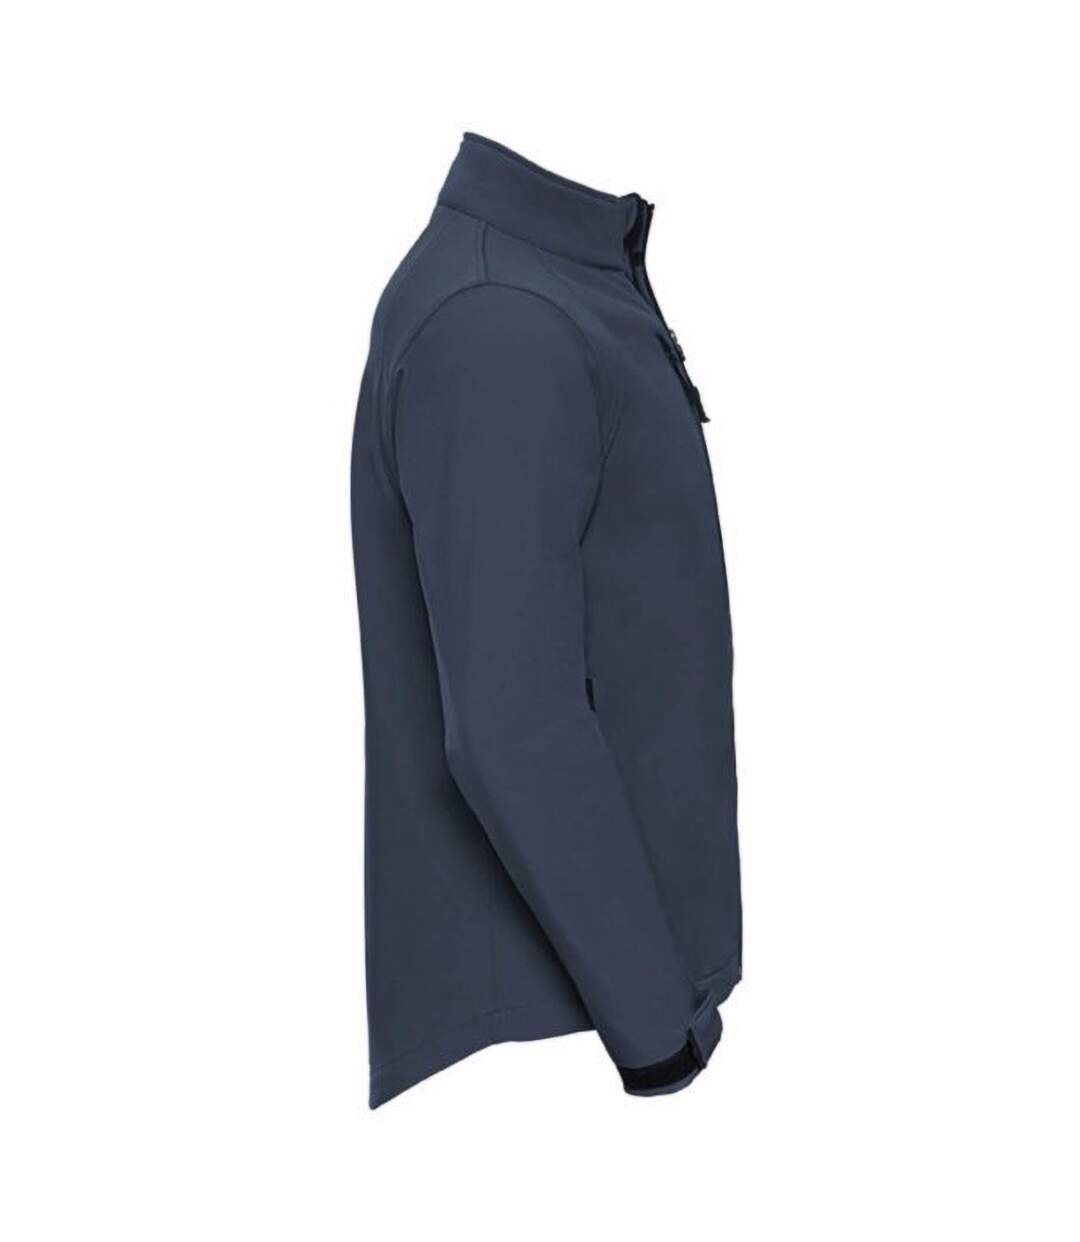 Russell Mens Water Resistant & Windproof Softshell Jacket (French Navy) - UTBC562